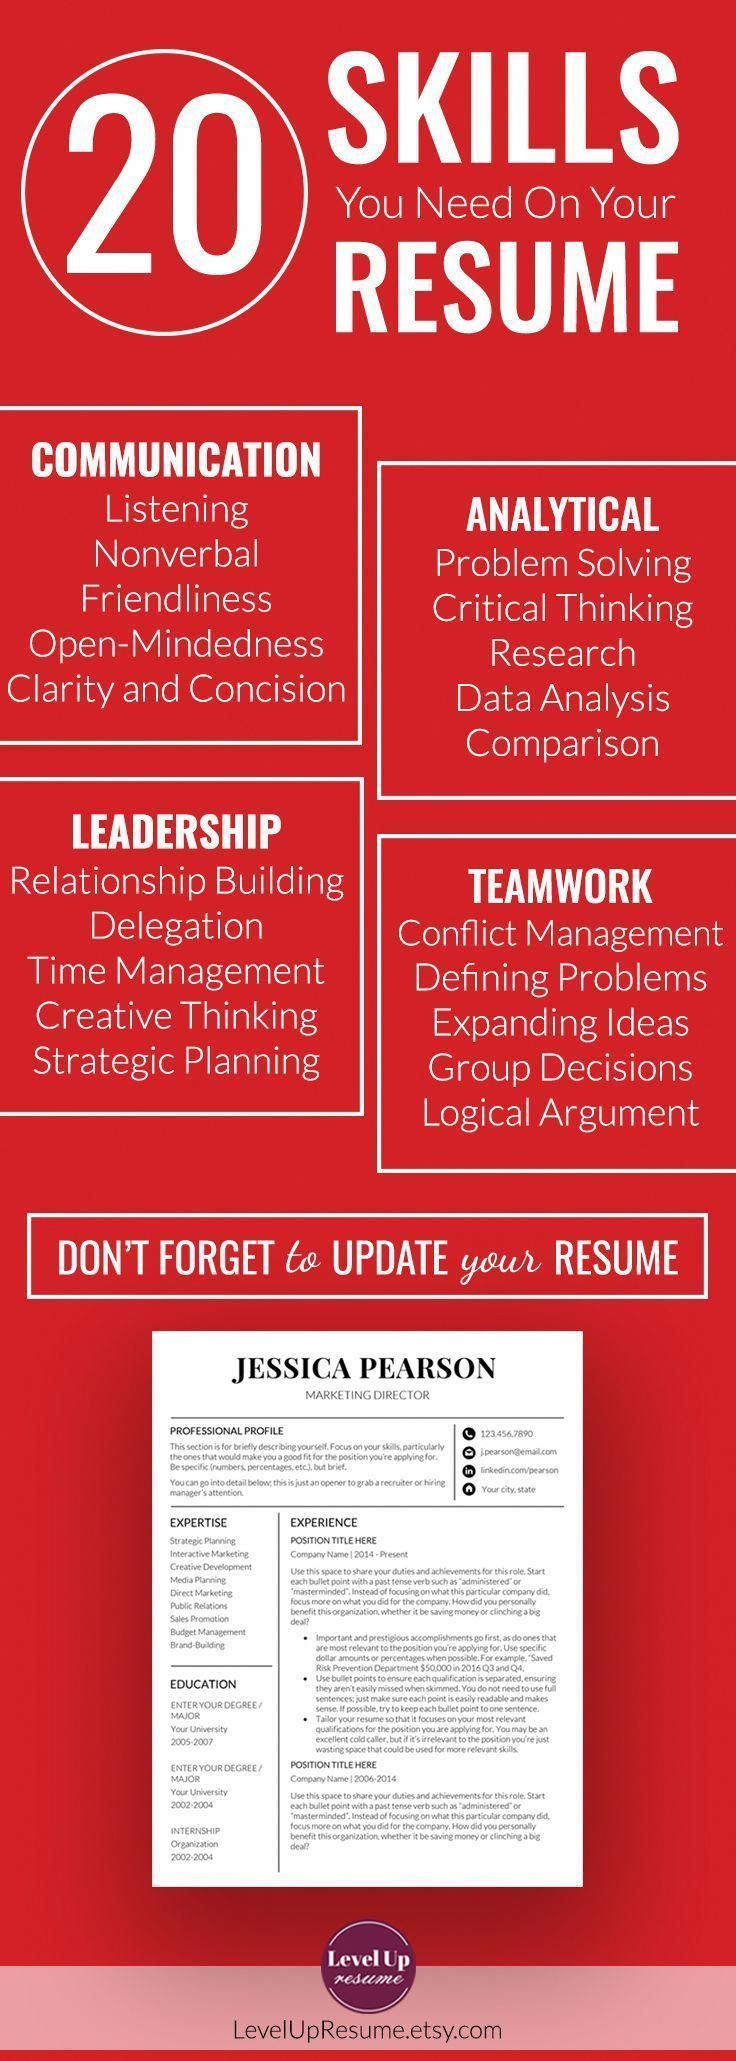 20 skills you need on your resume (Resume Tips, Career